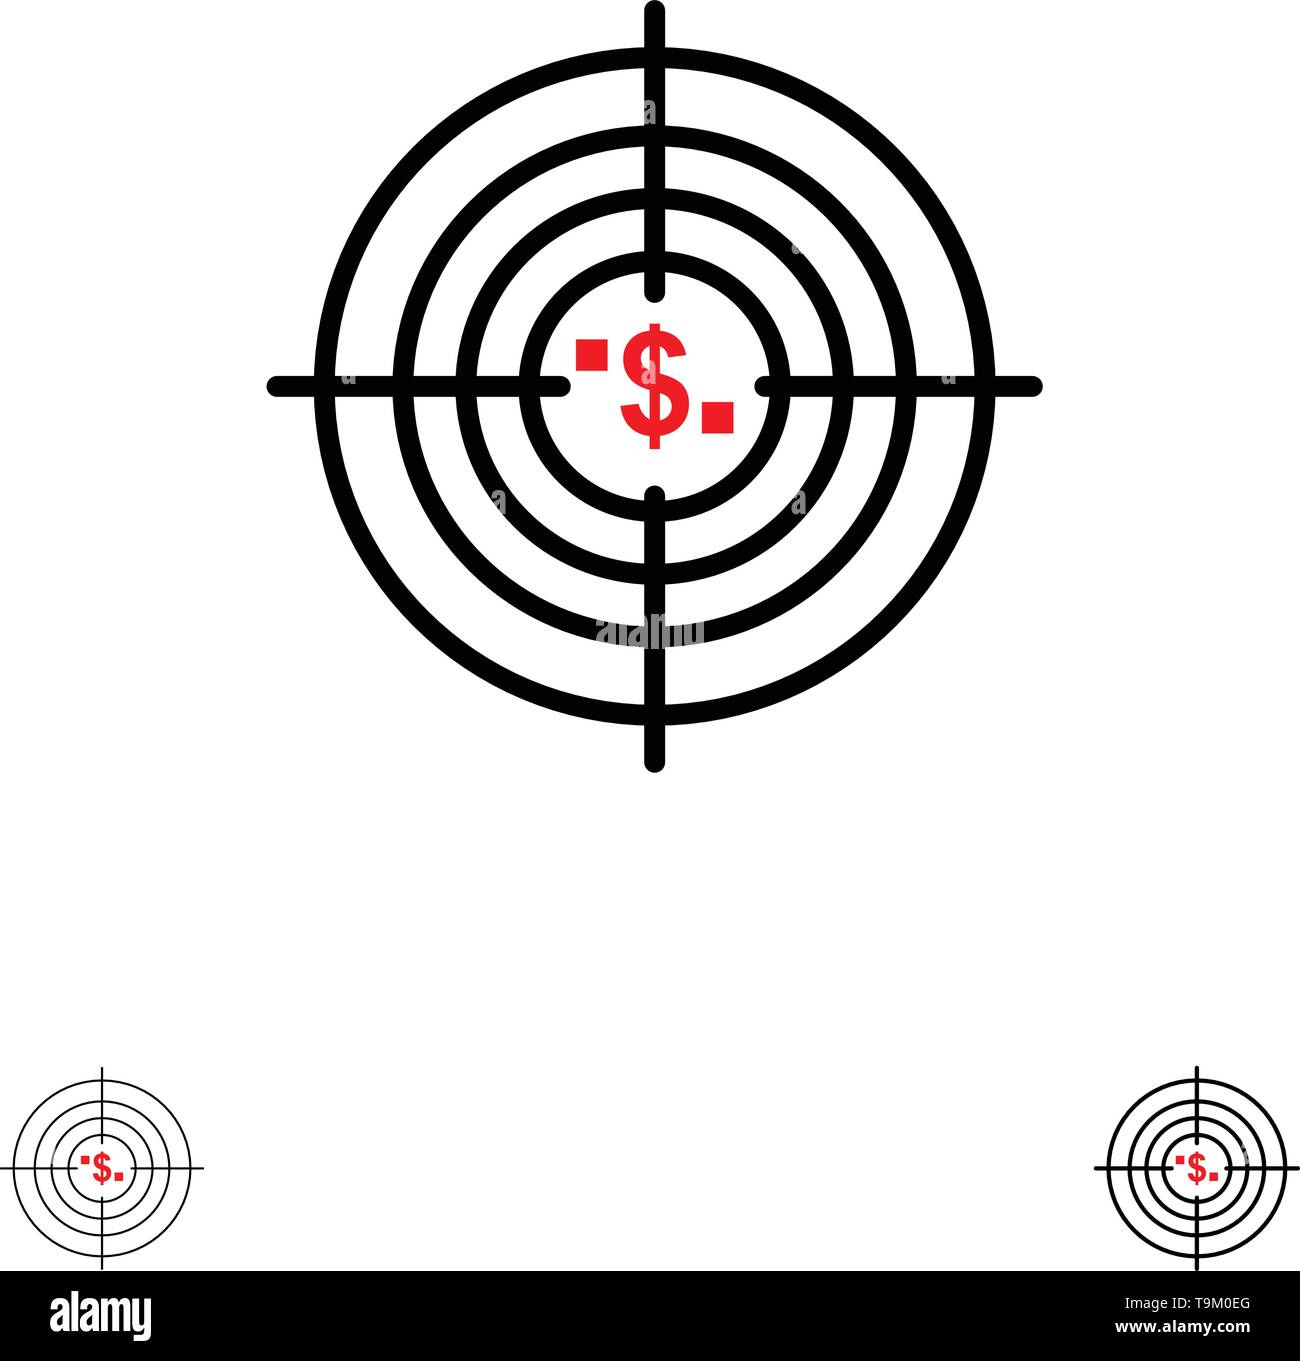 Target, Aim, Business, Cash, Financial, Funds, Hunting, Money Bold and thin black line icon set - Stock Image